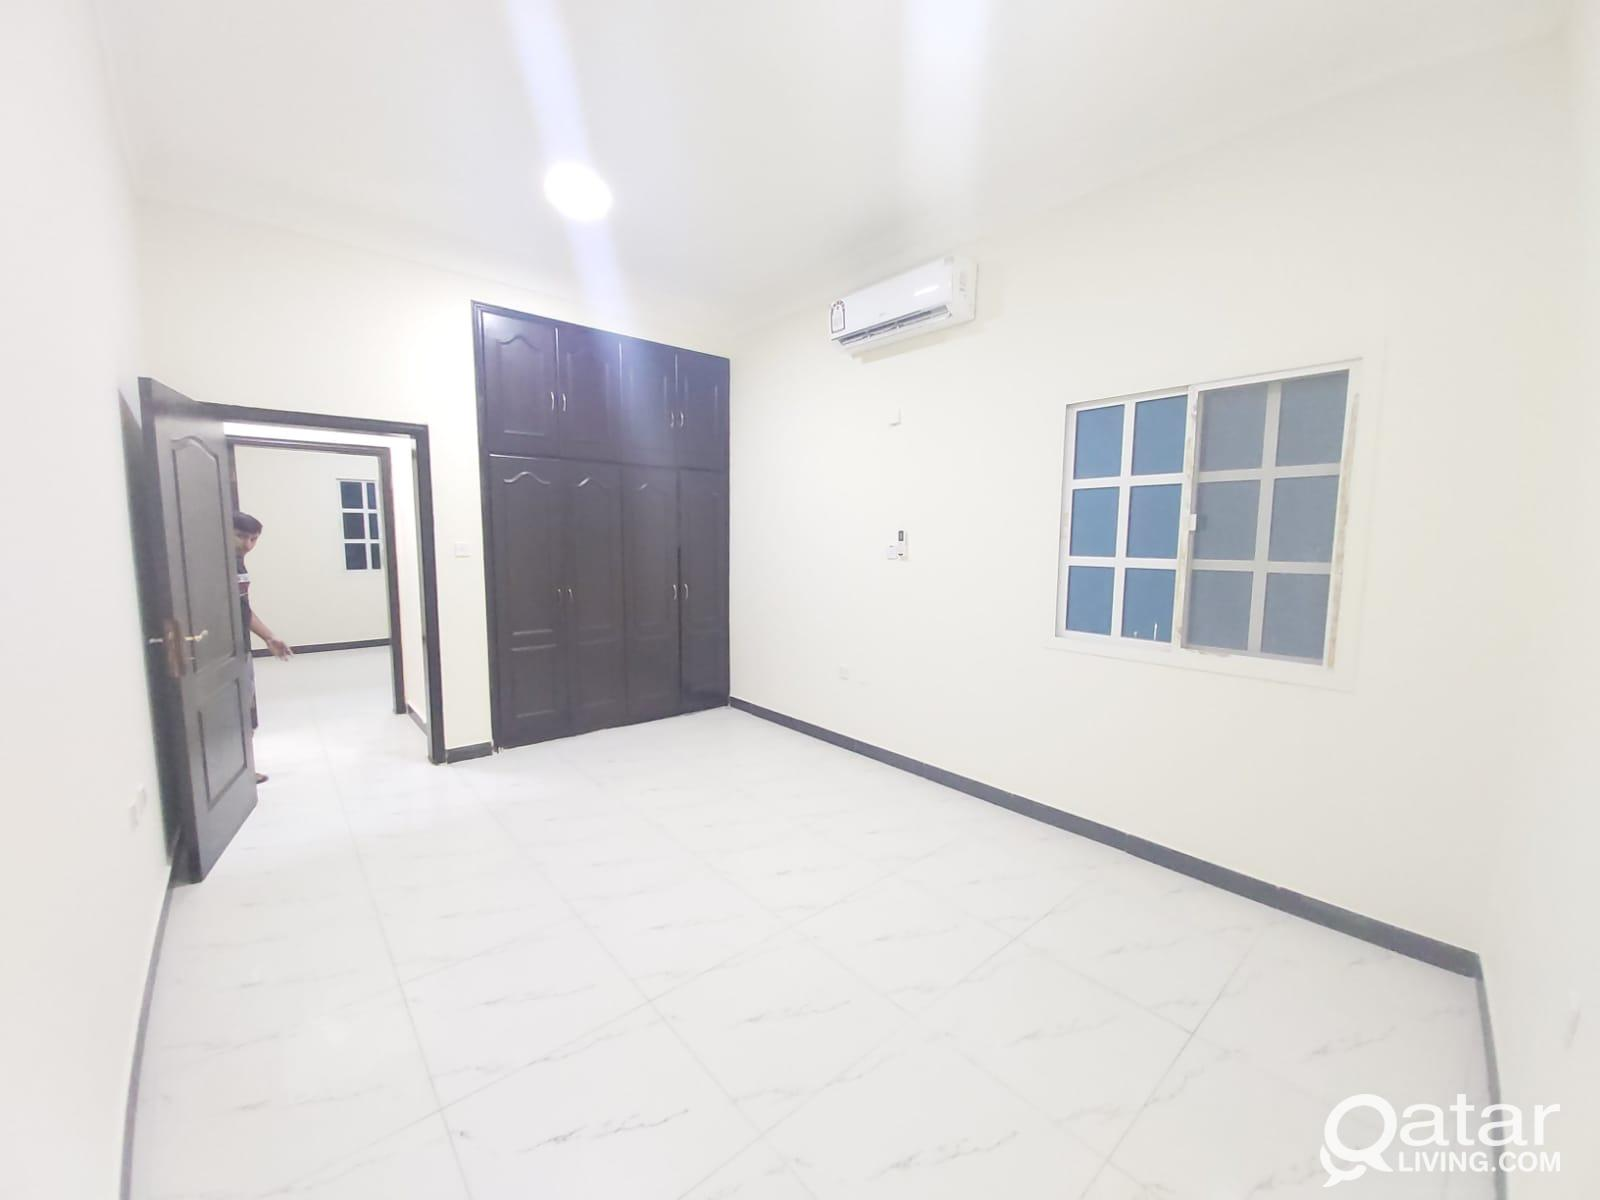 Hot Offer - 1 Month Free -  Spacious  2 BHK Apartm